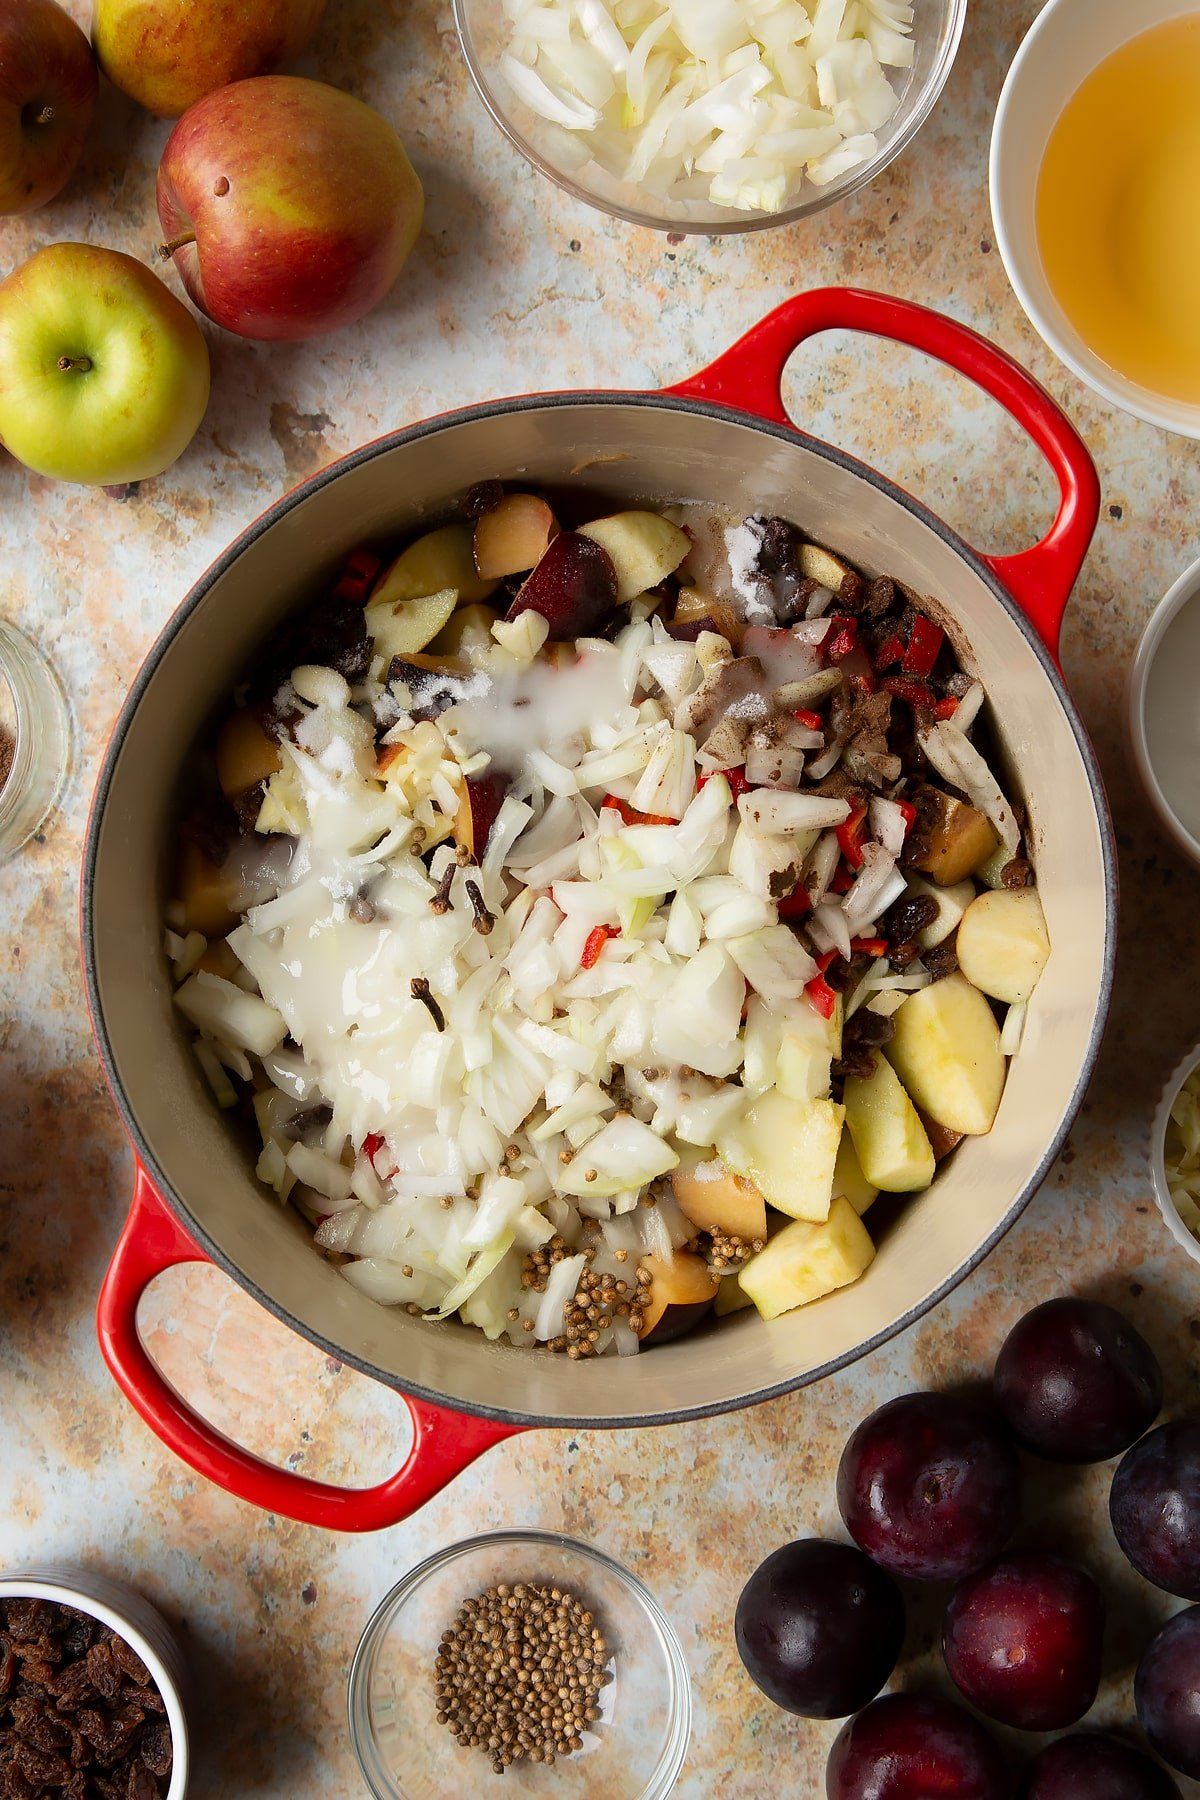 Chopped plums, apples, raisins, chilli, onion, garlic, sugar, vinegar and water in a large pan. Ingredients to make a fruit chutney recipe surround the pan.